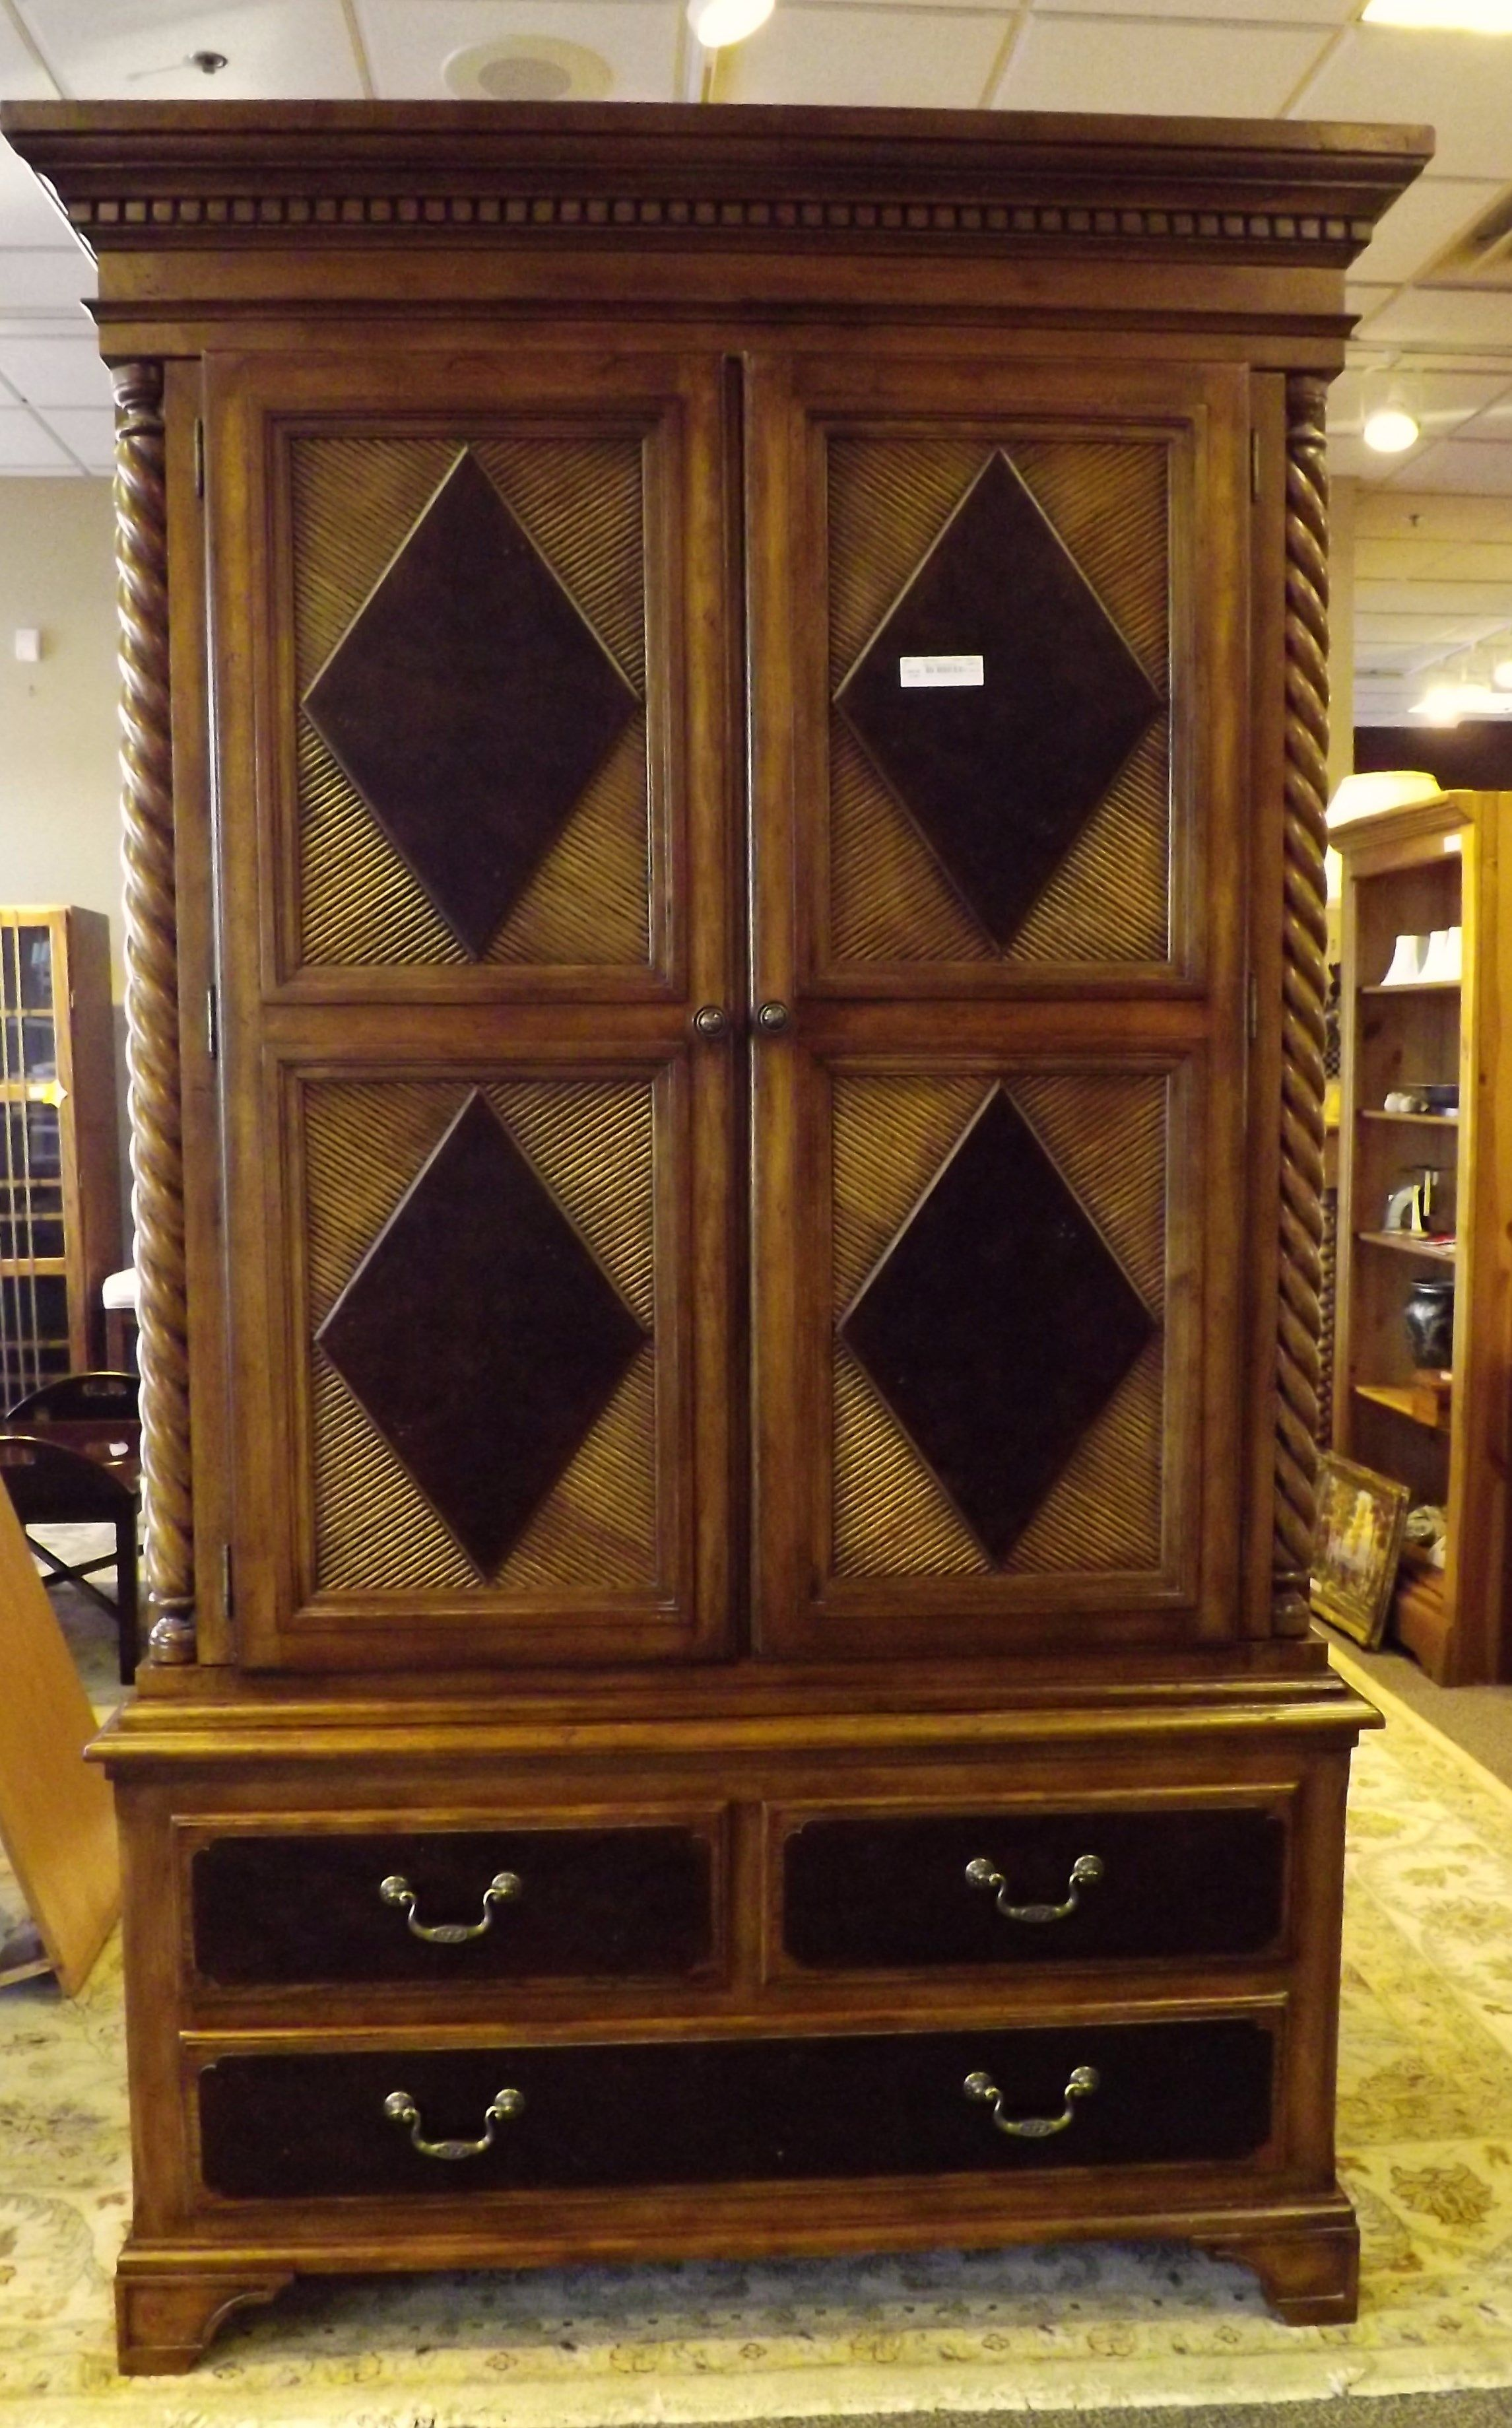 Alexander Julian At Home Armoire  Multipurpose Armoire Can be Used for  Clothing Storage or TV. Alexander Julian At Home Armoire  Multipurpose Armoire Can be Used